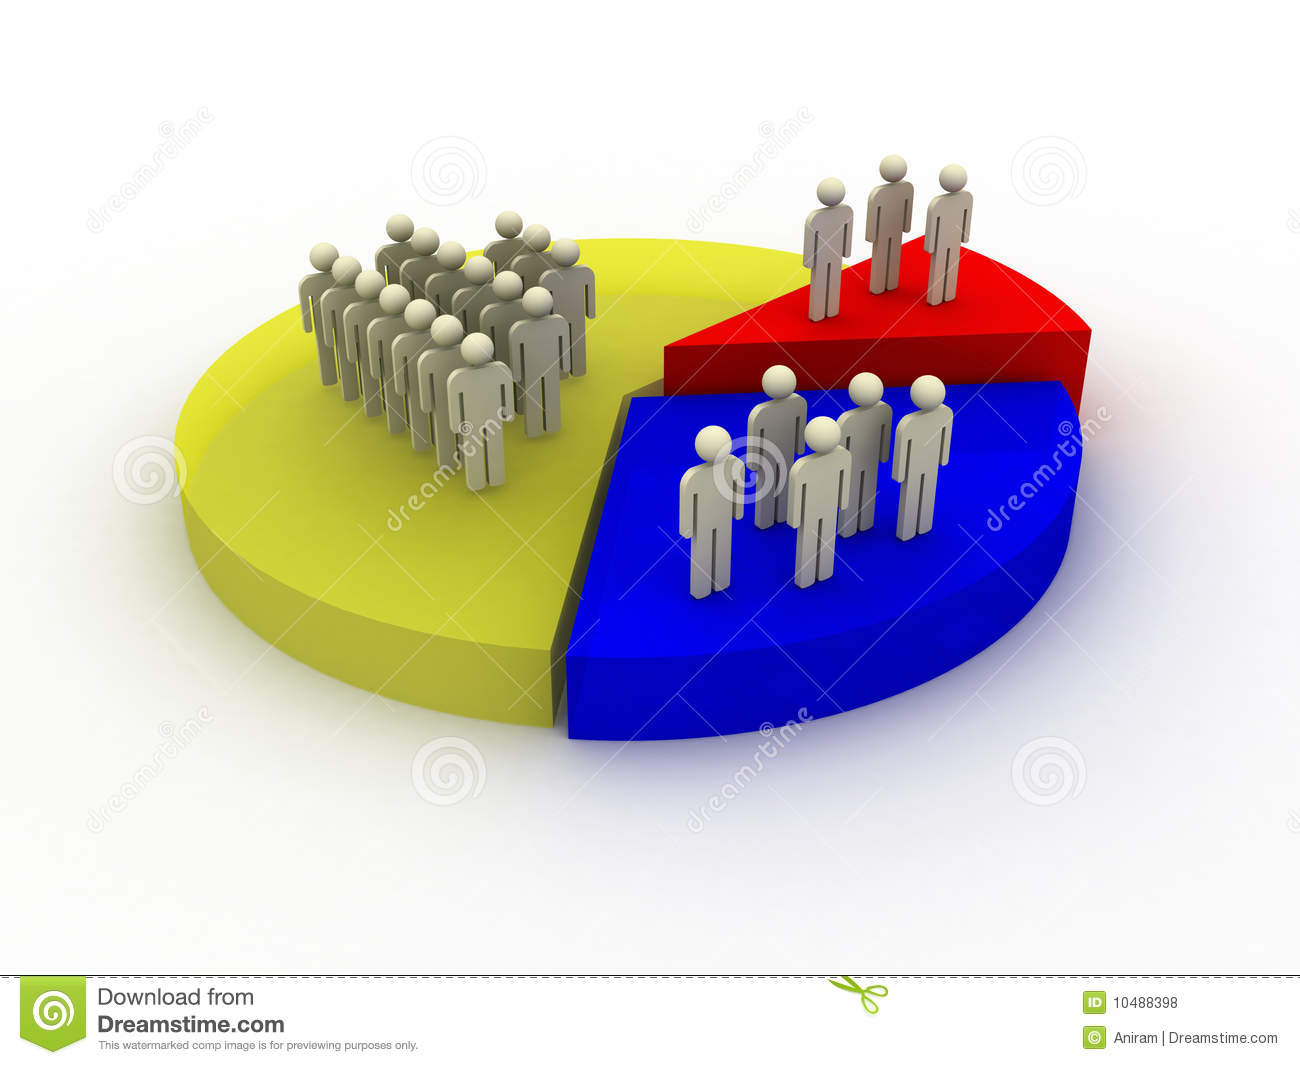 Royalty Free Stock Photos Demography Chart Image10488398 on thumbs up clip art